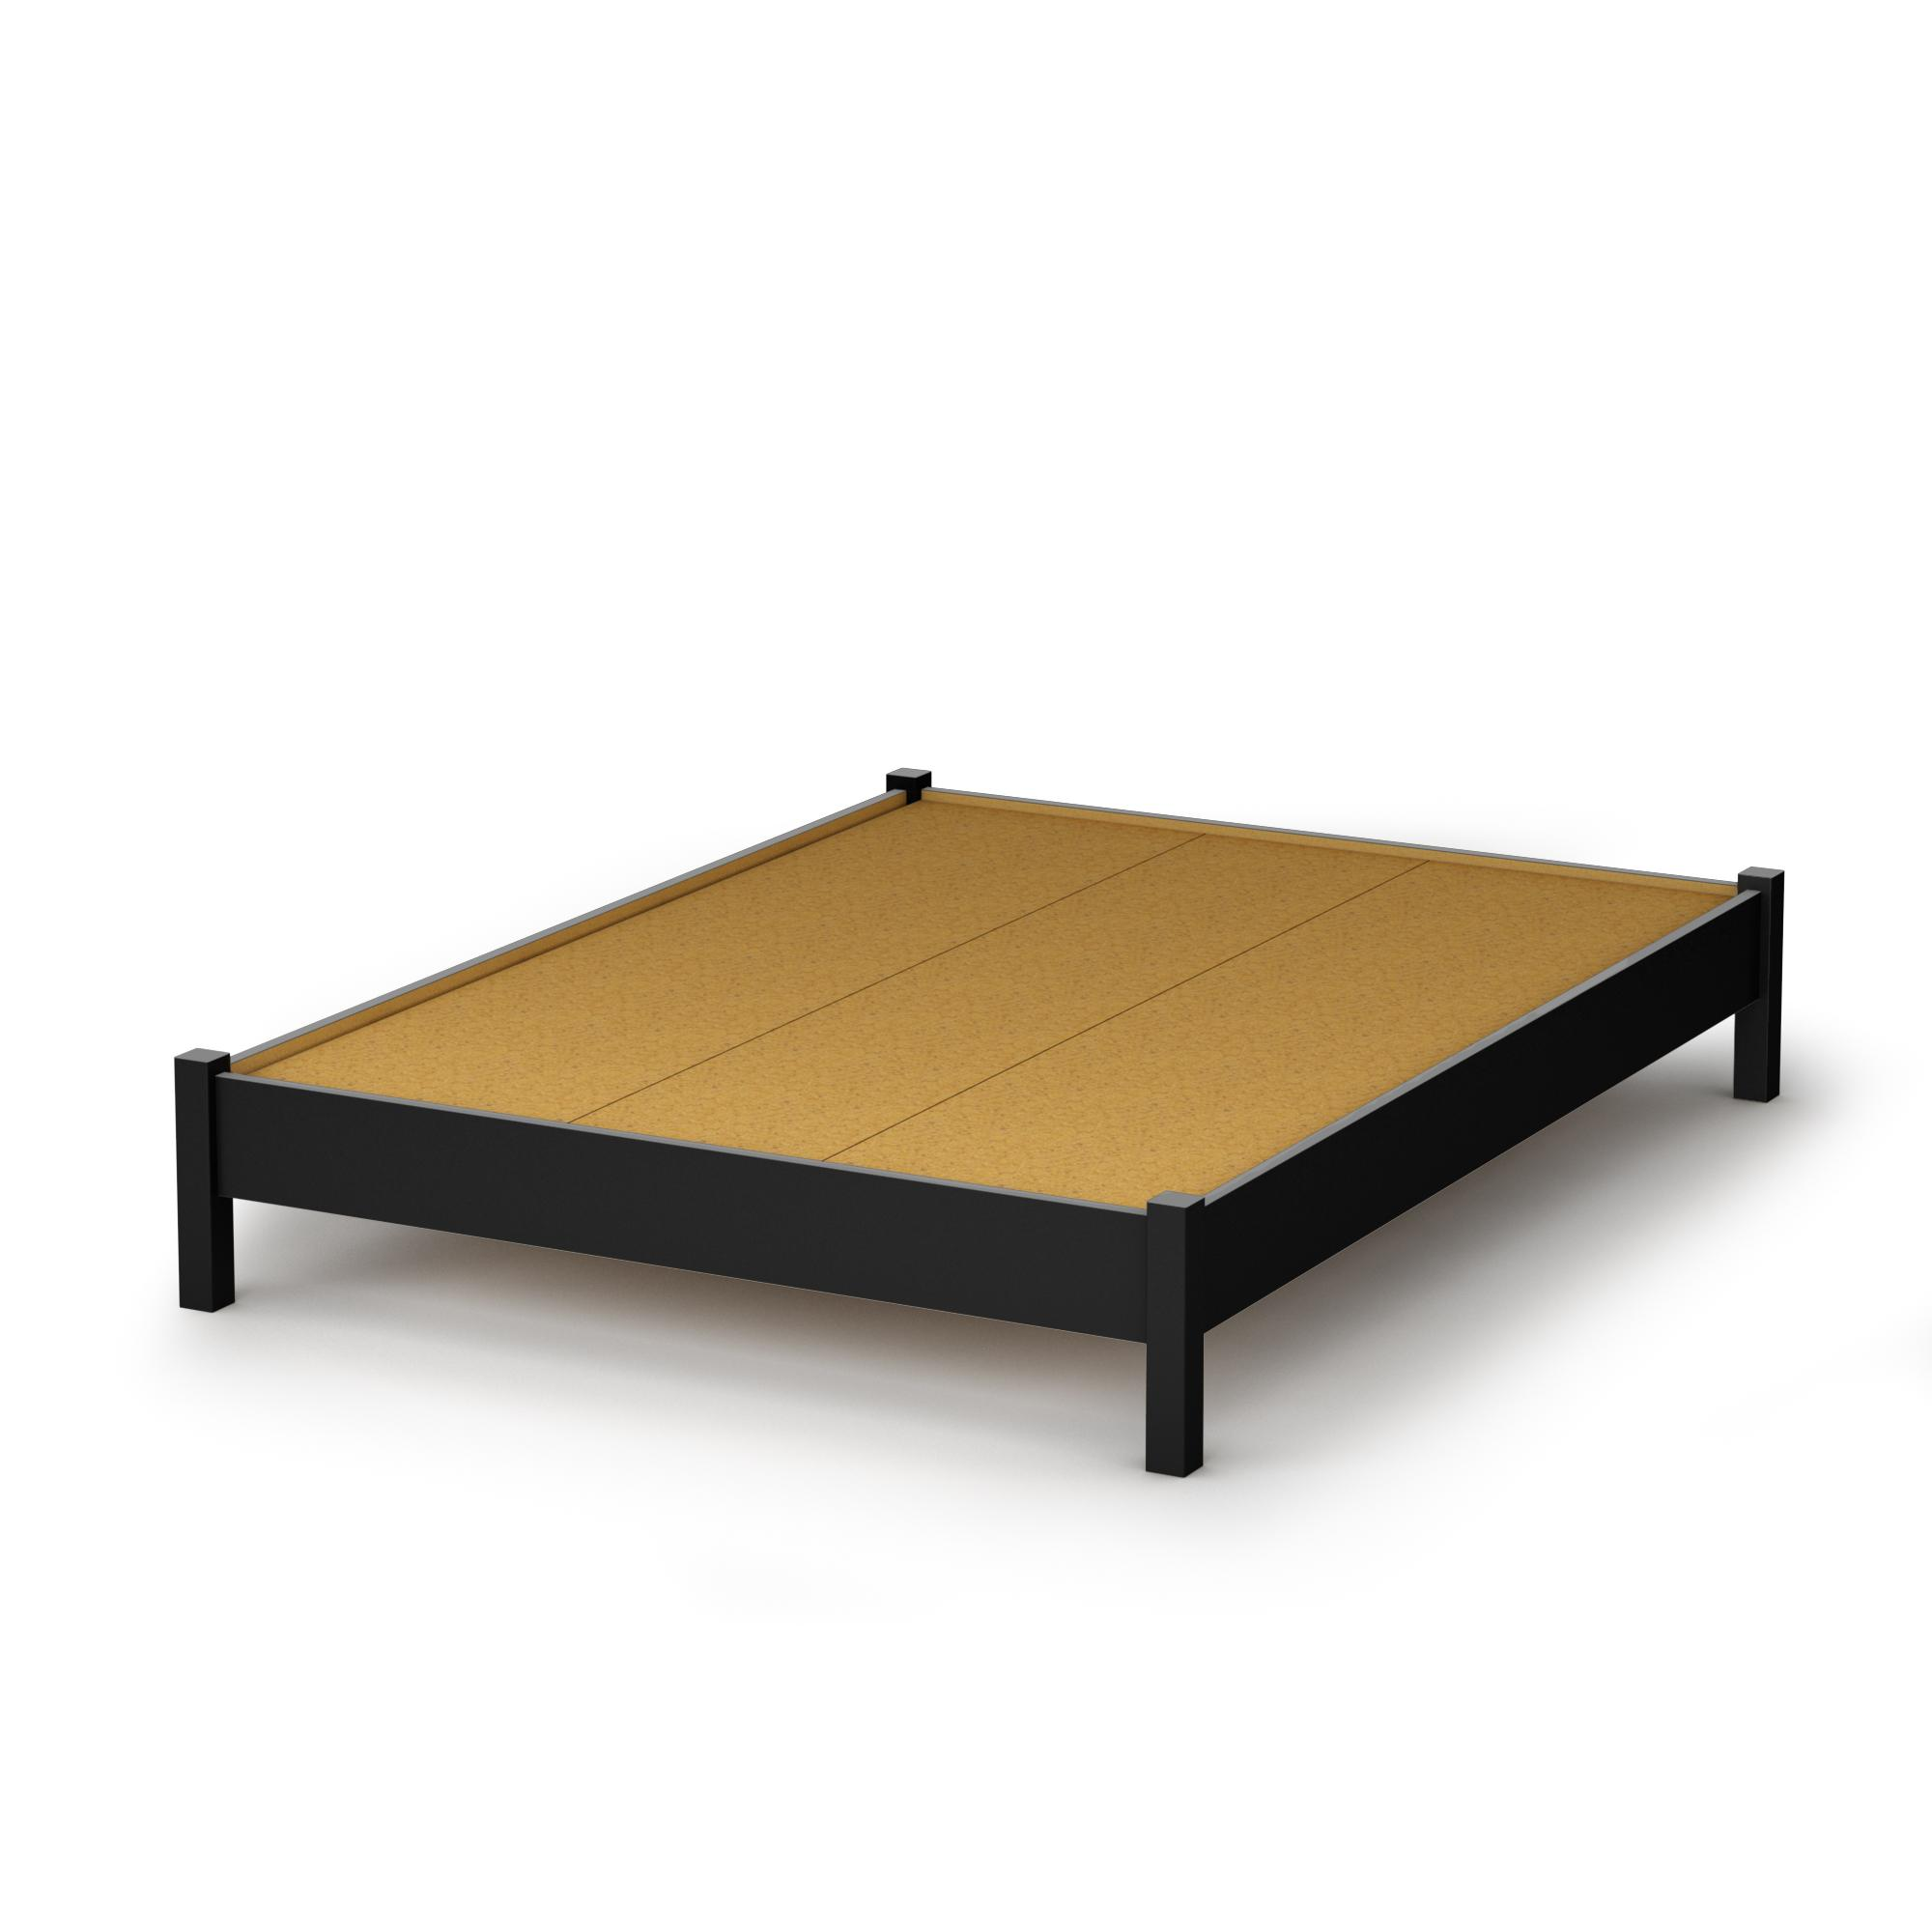 "South Shore Step One Full Platform Bed (54"") in Pure Black ..."